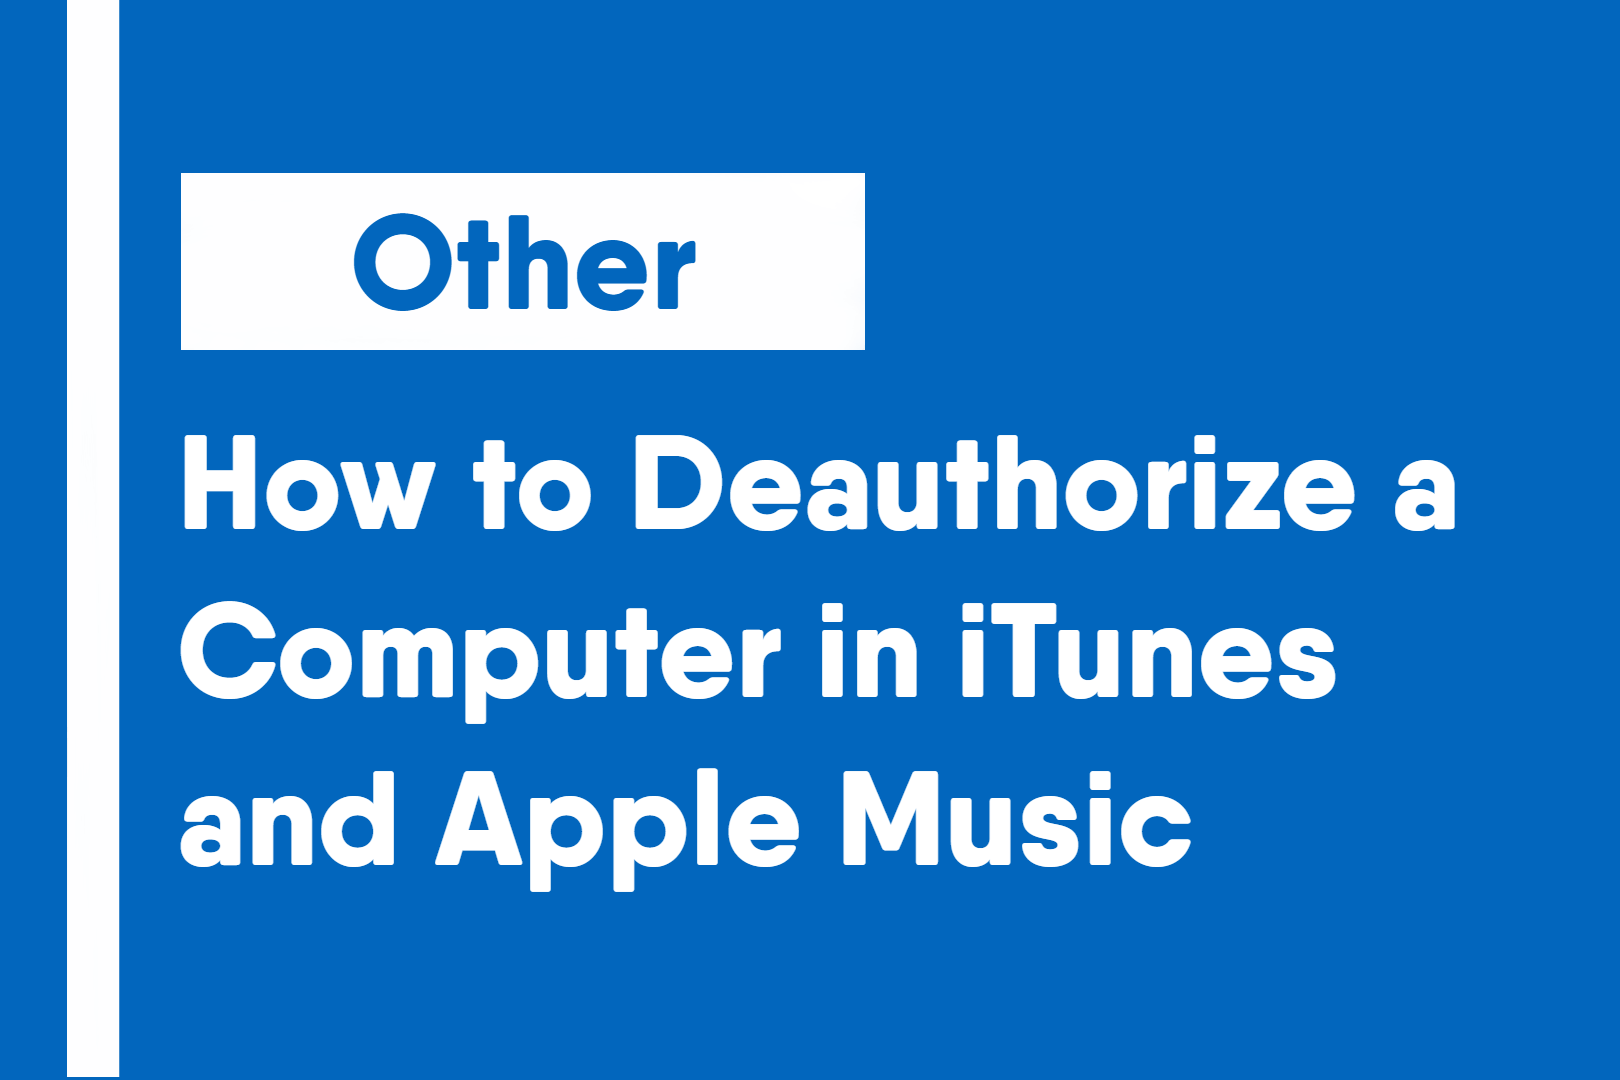 How to Deauthorize a Computer in iTunes and Apple Music